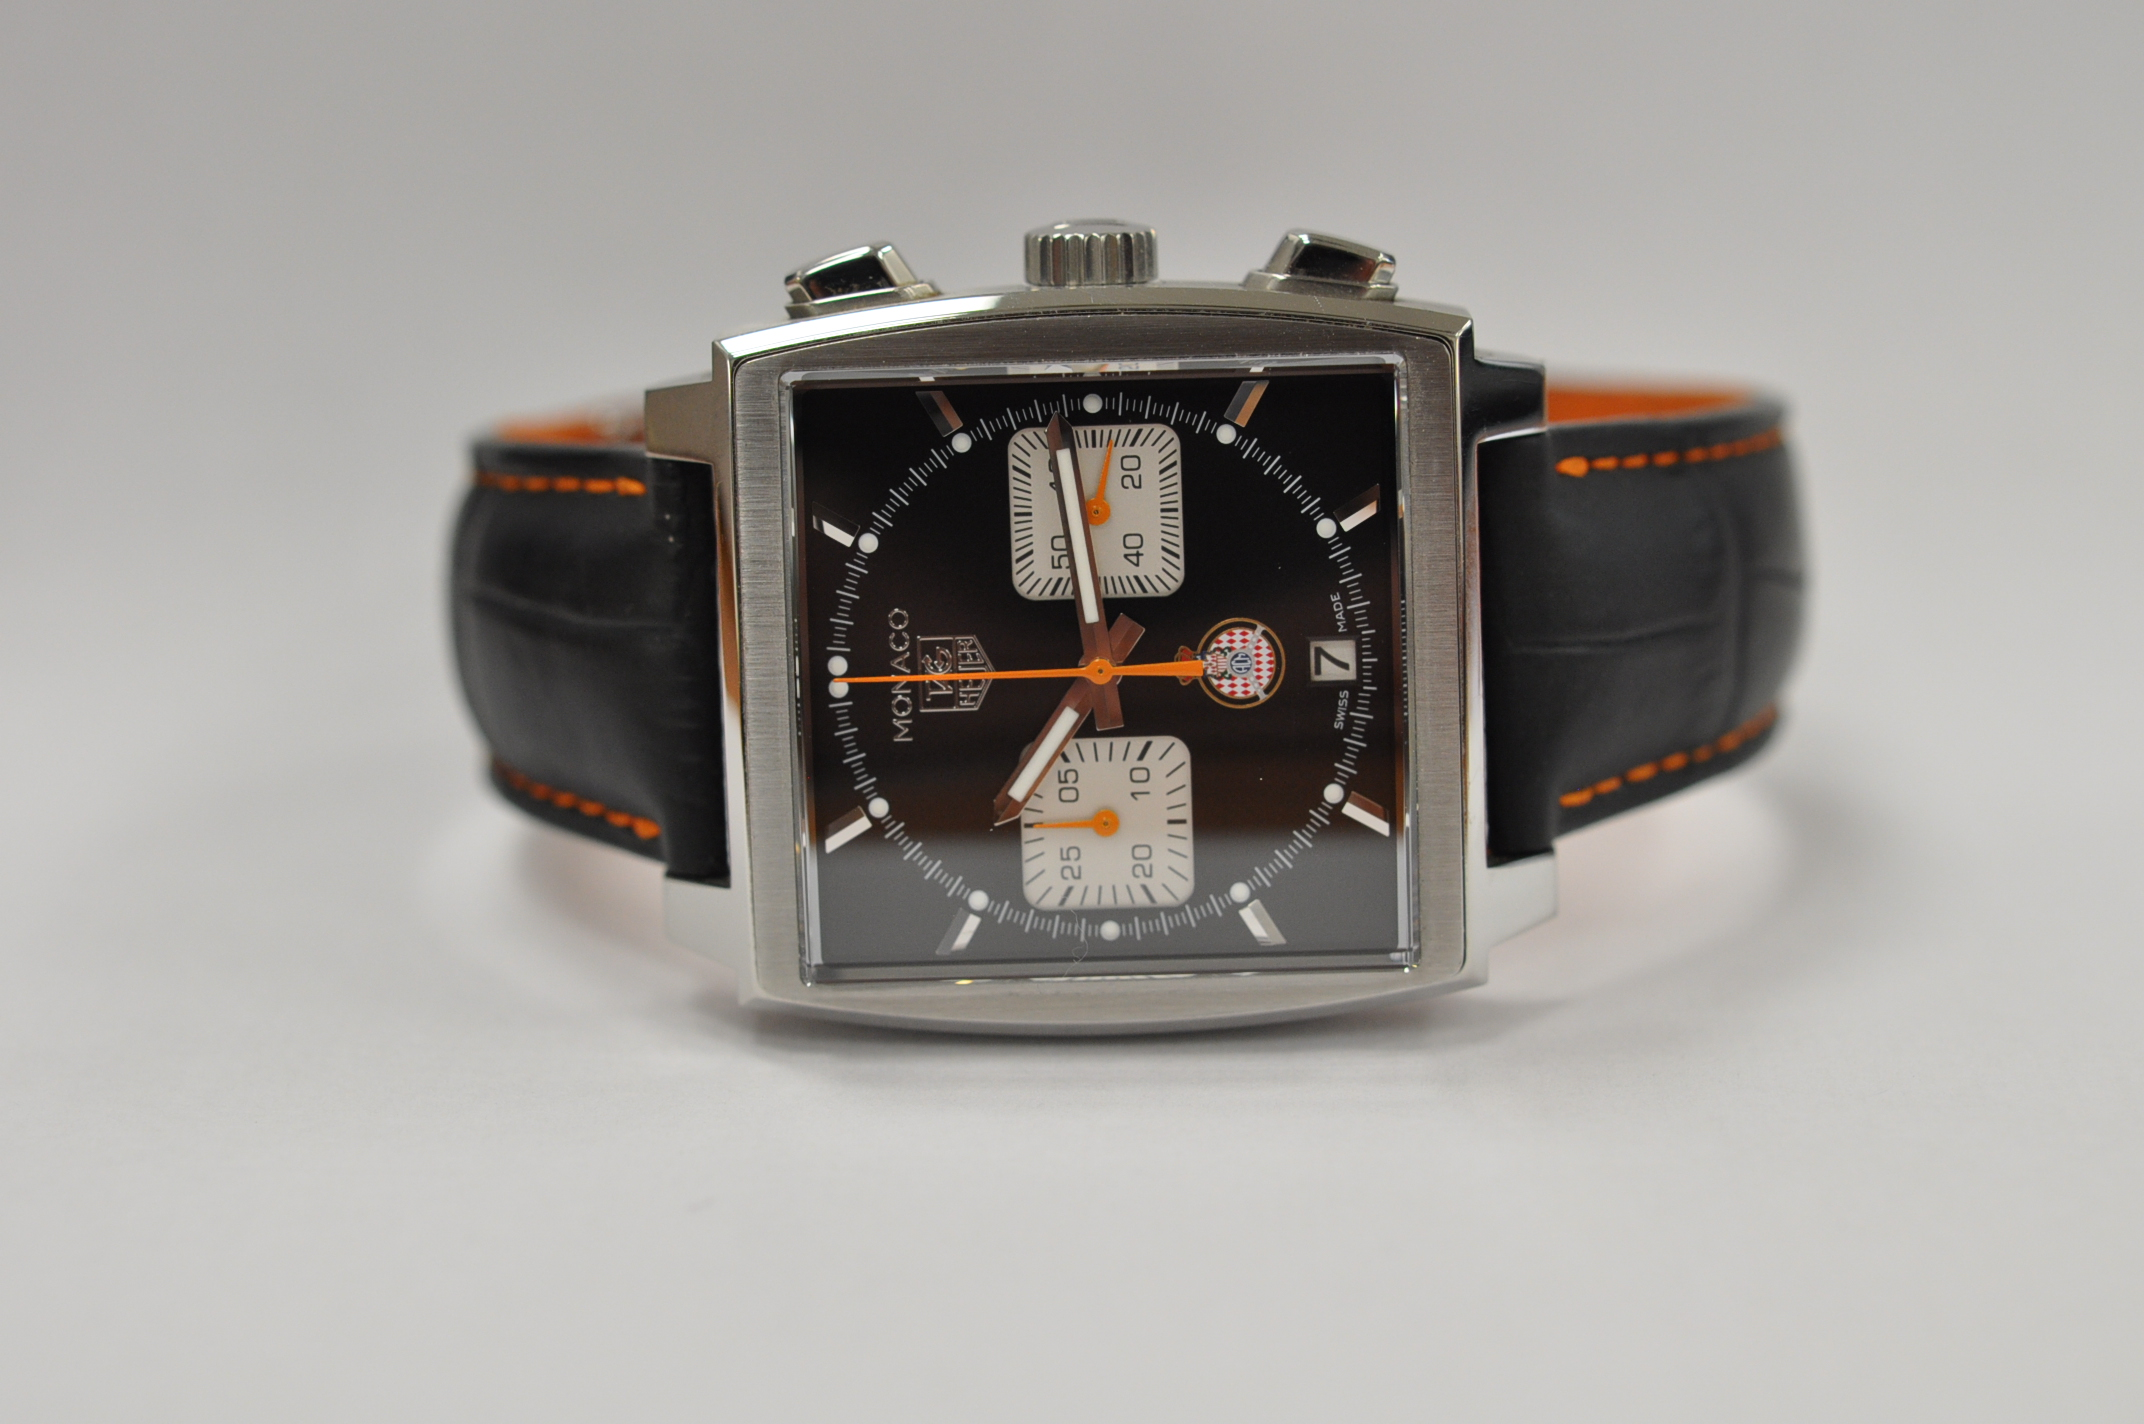 2013 TAG Heuer Monaco 'Automobile Club de Monaco' edition